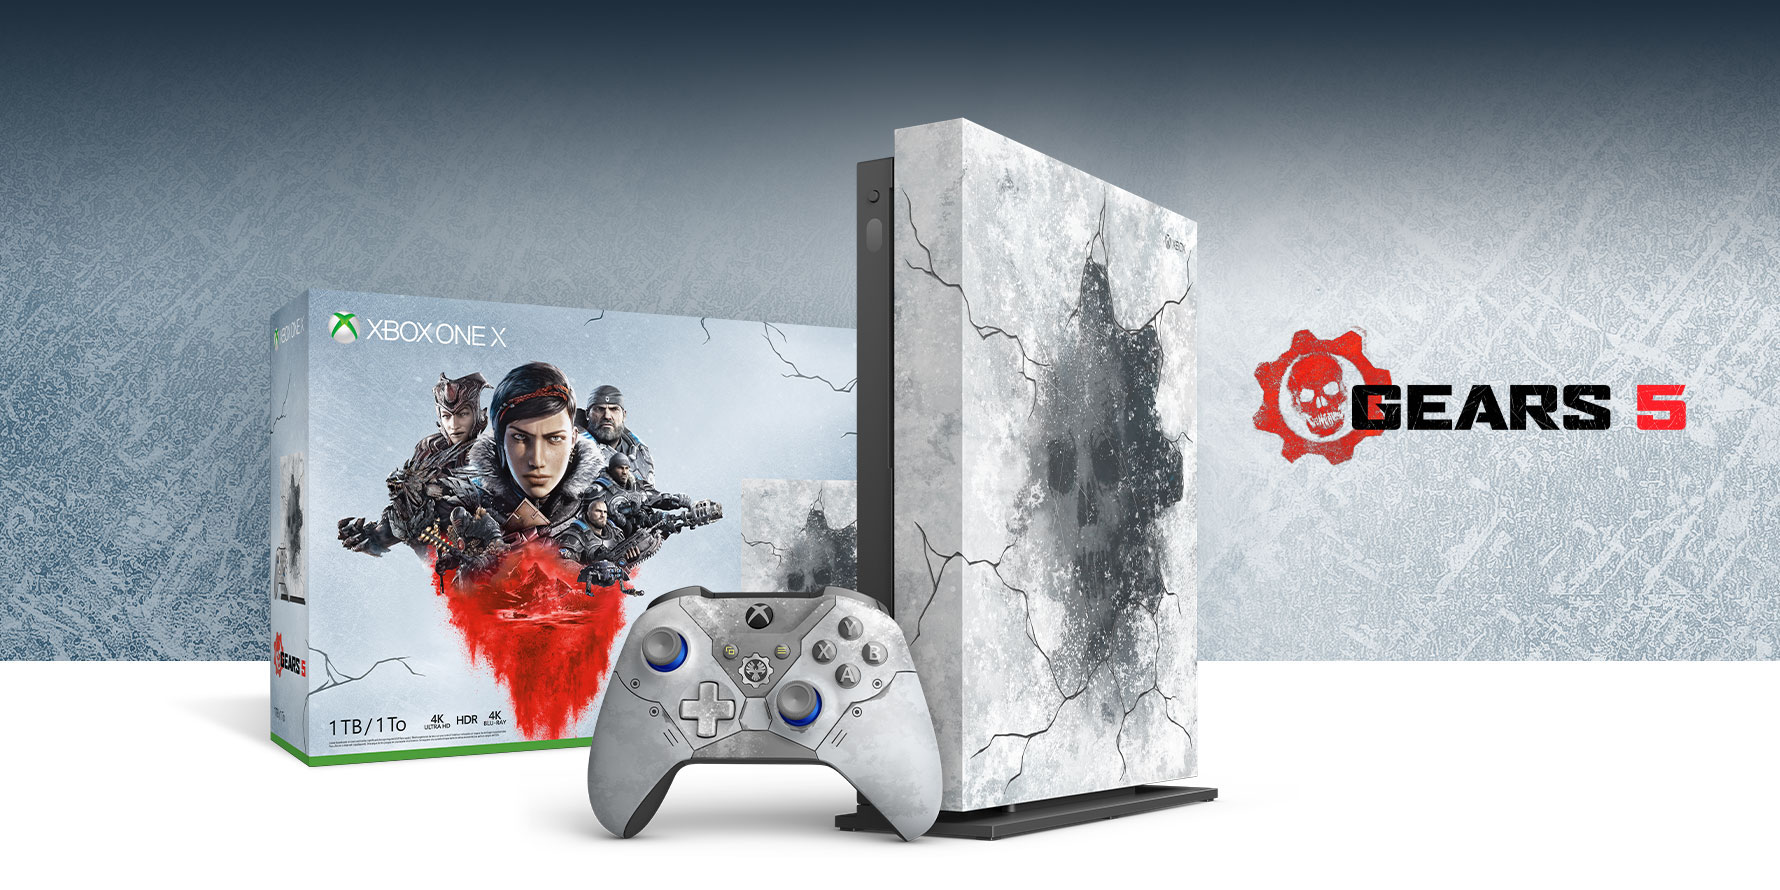 Xbox One X bundles at $200 off: Gears 5 Limited Edition, Star Wars Jedi, more - 9to5Toys